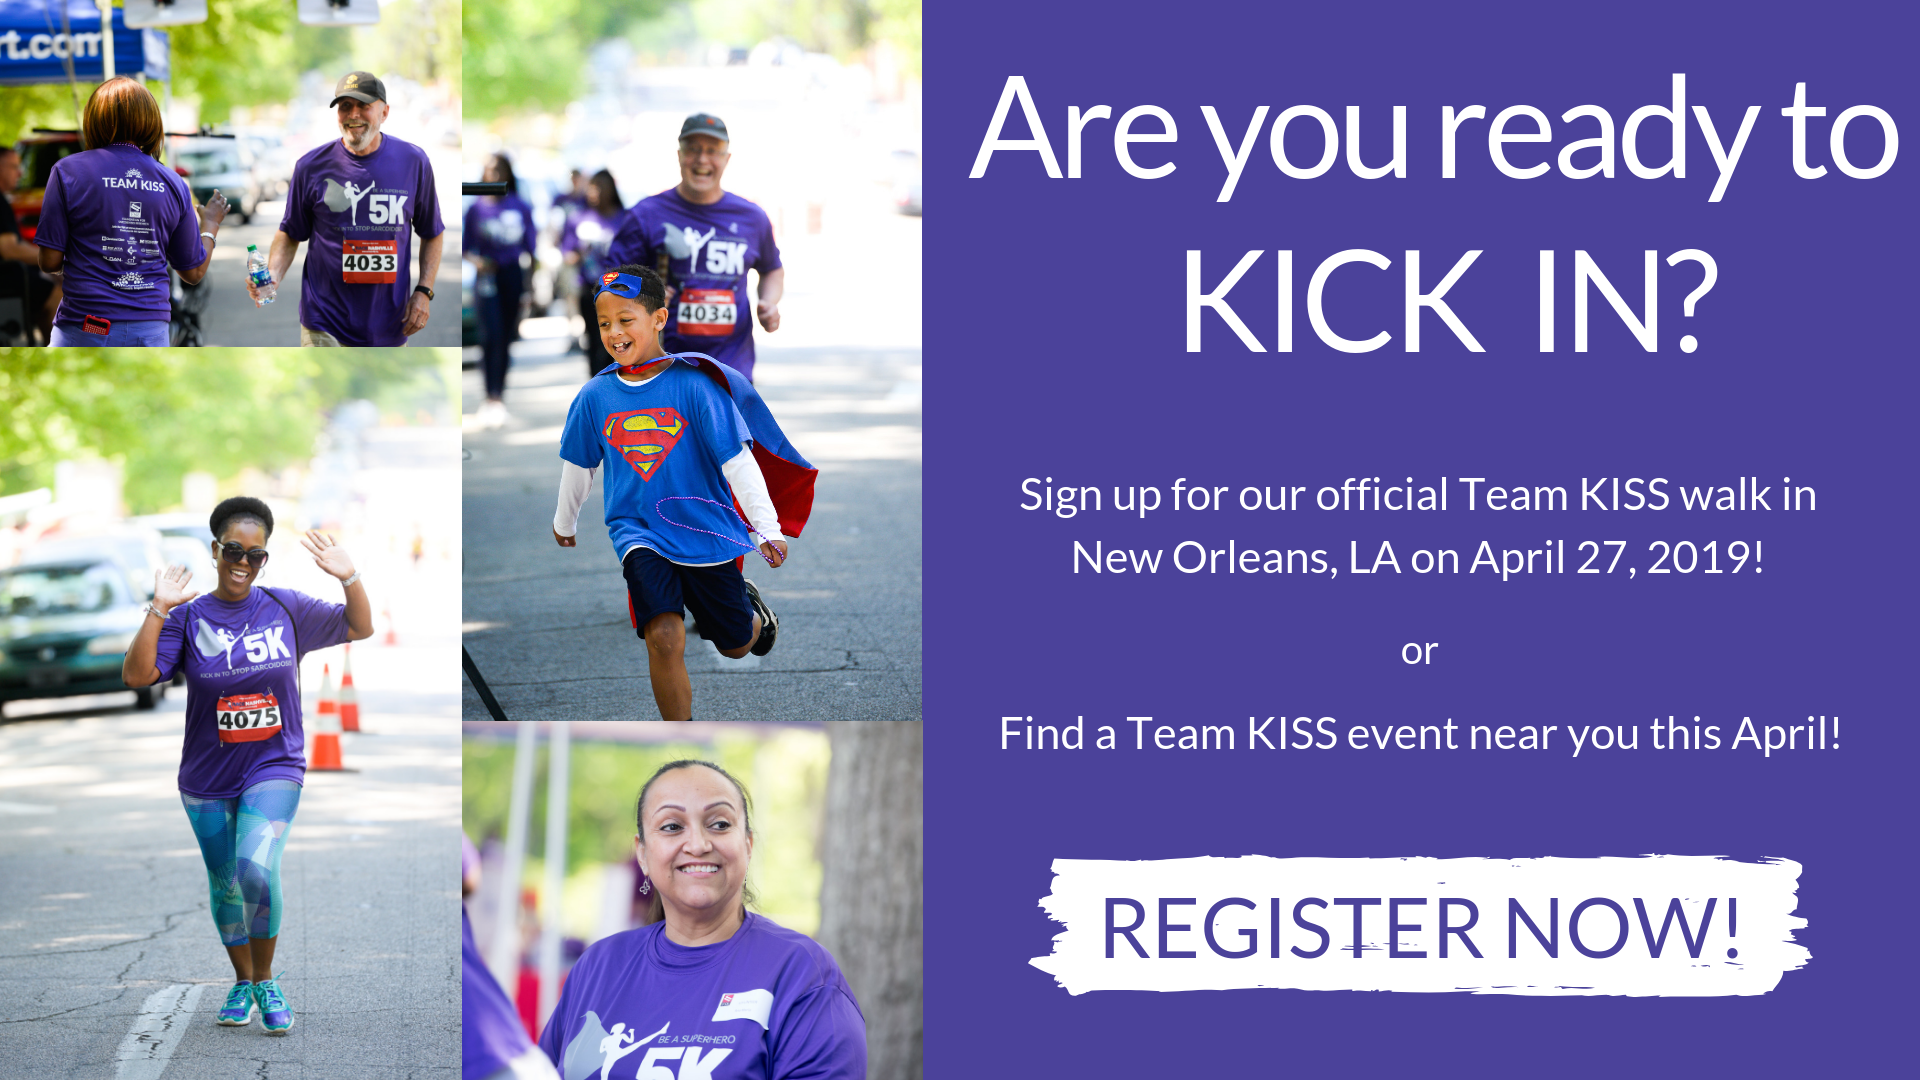 Are you ready to KICK IN? KISS 5K Registration now open!